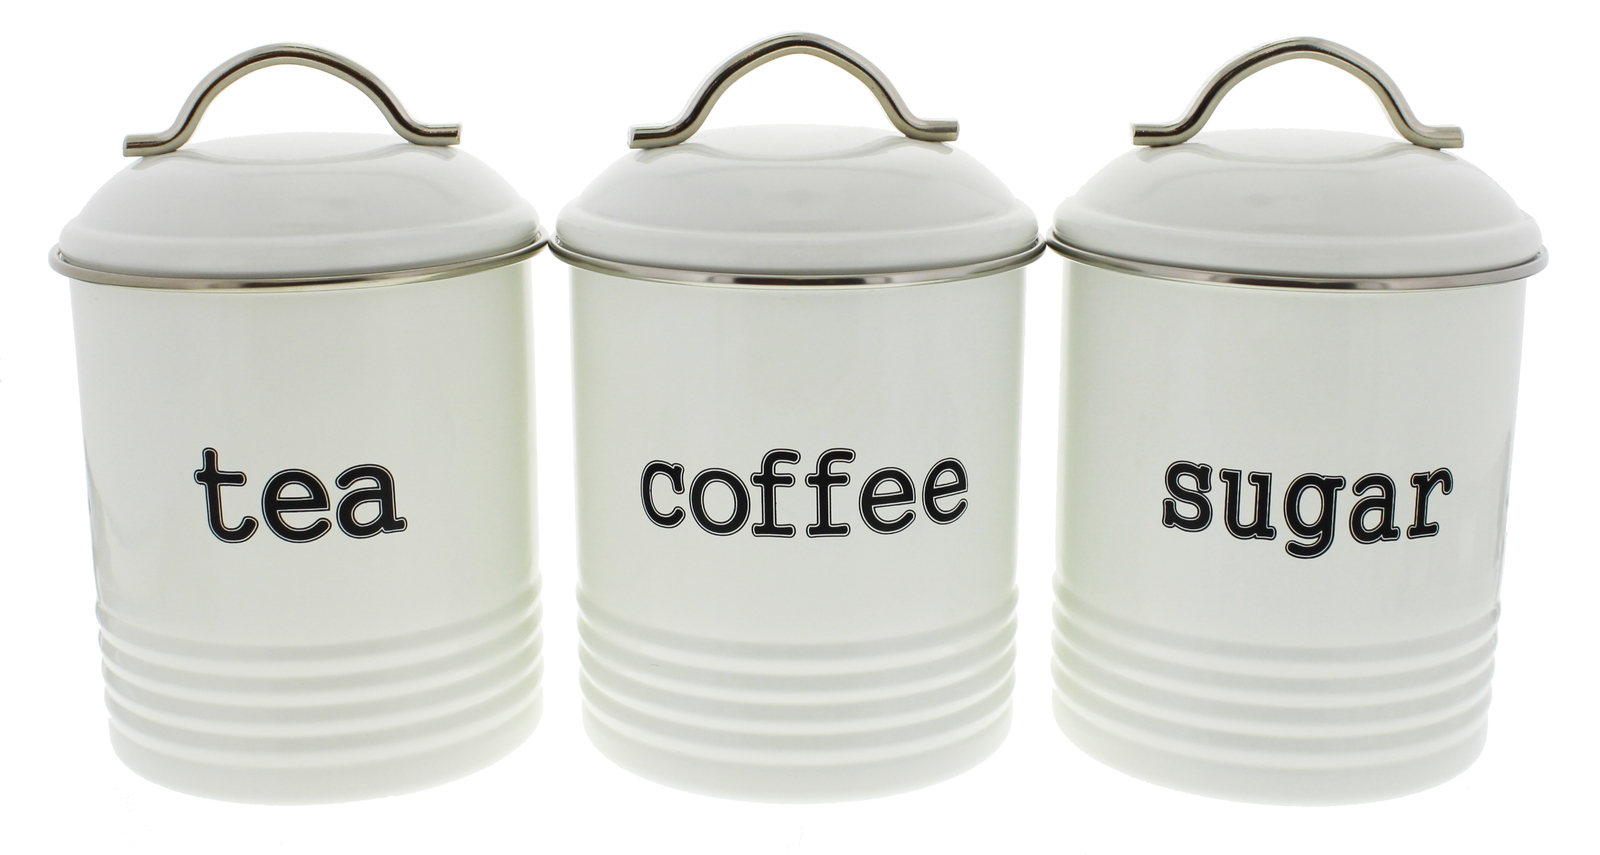 Tea/Sugar/Coffee Canisters 3 Set - White | at Mighty Ape NZ